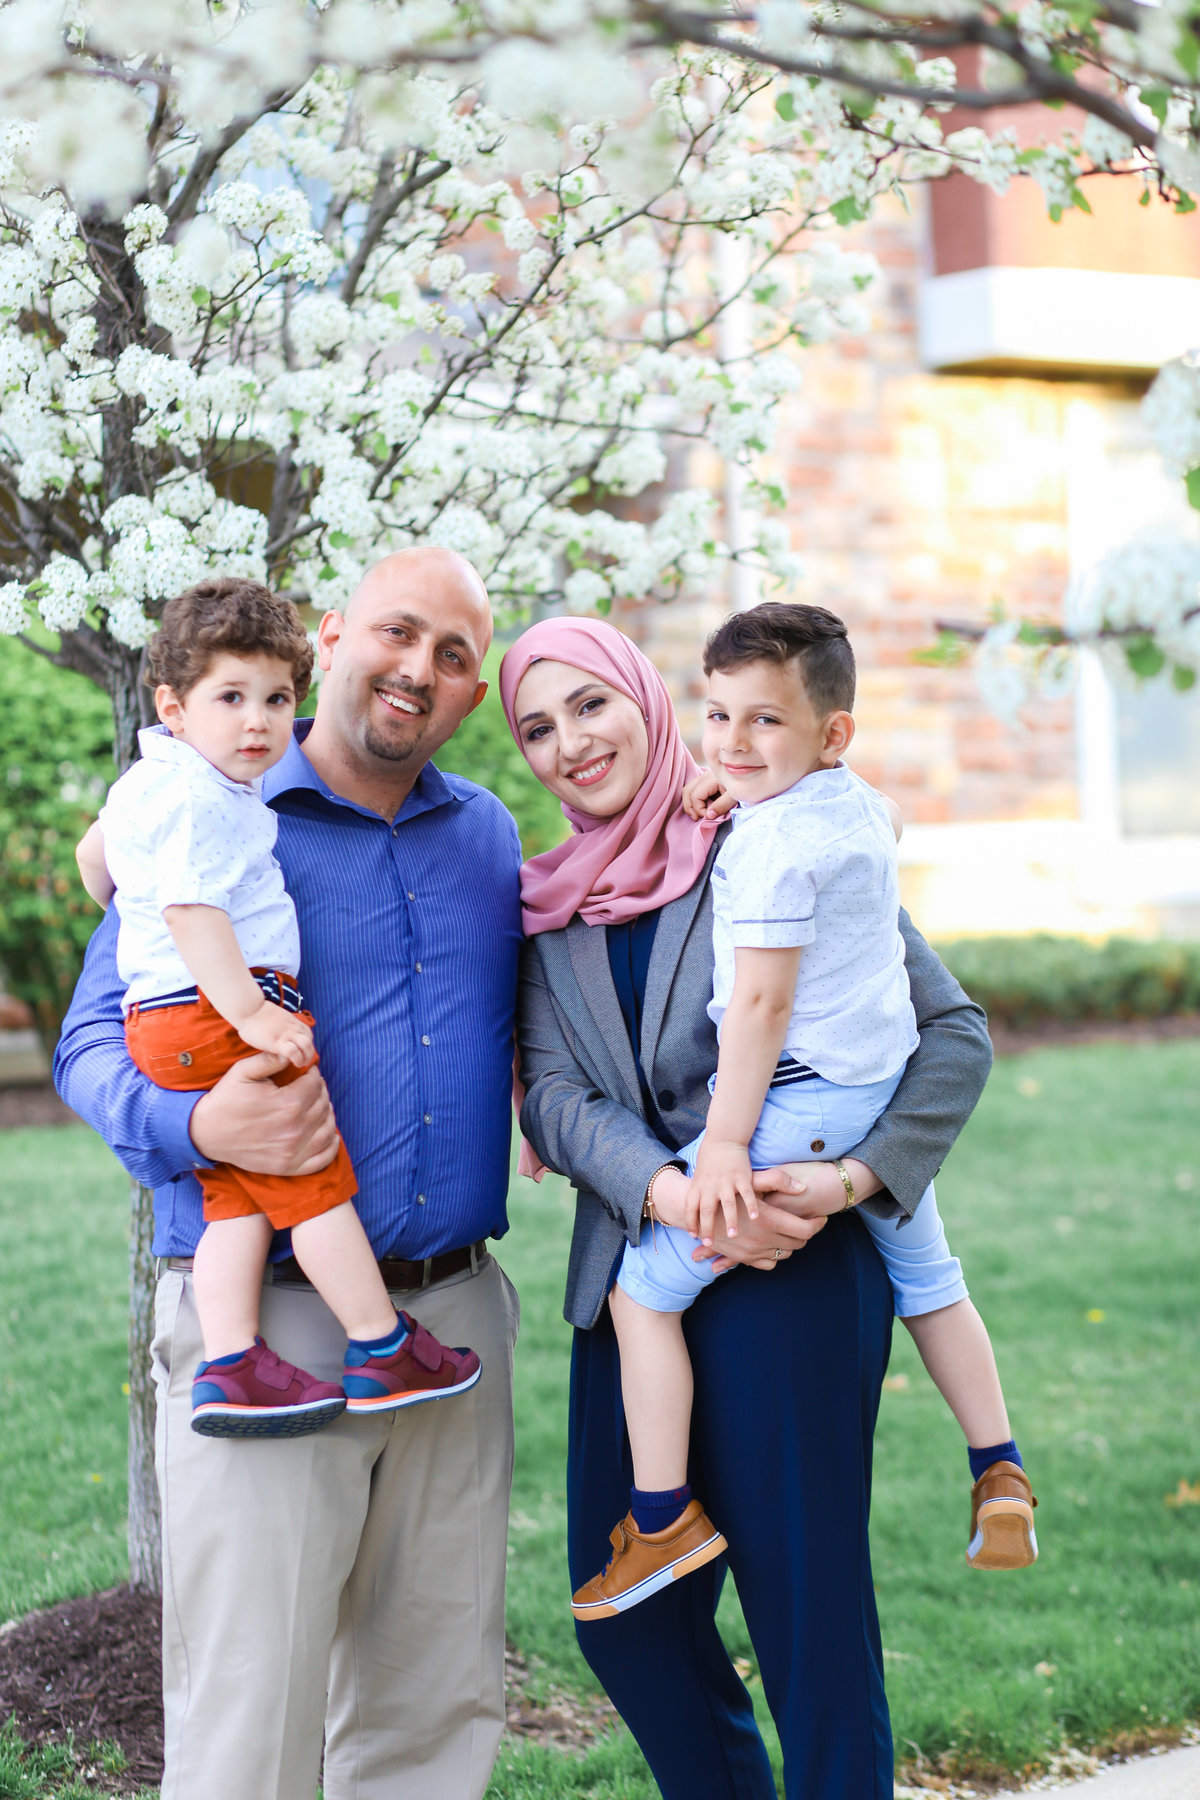 Alaa Family Portaits - Mariam Saifan Photography (22 of 95)